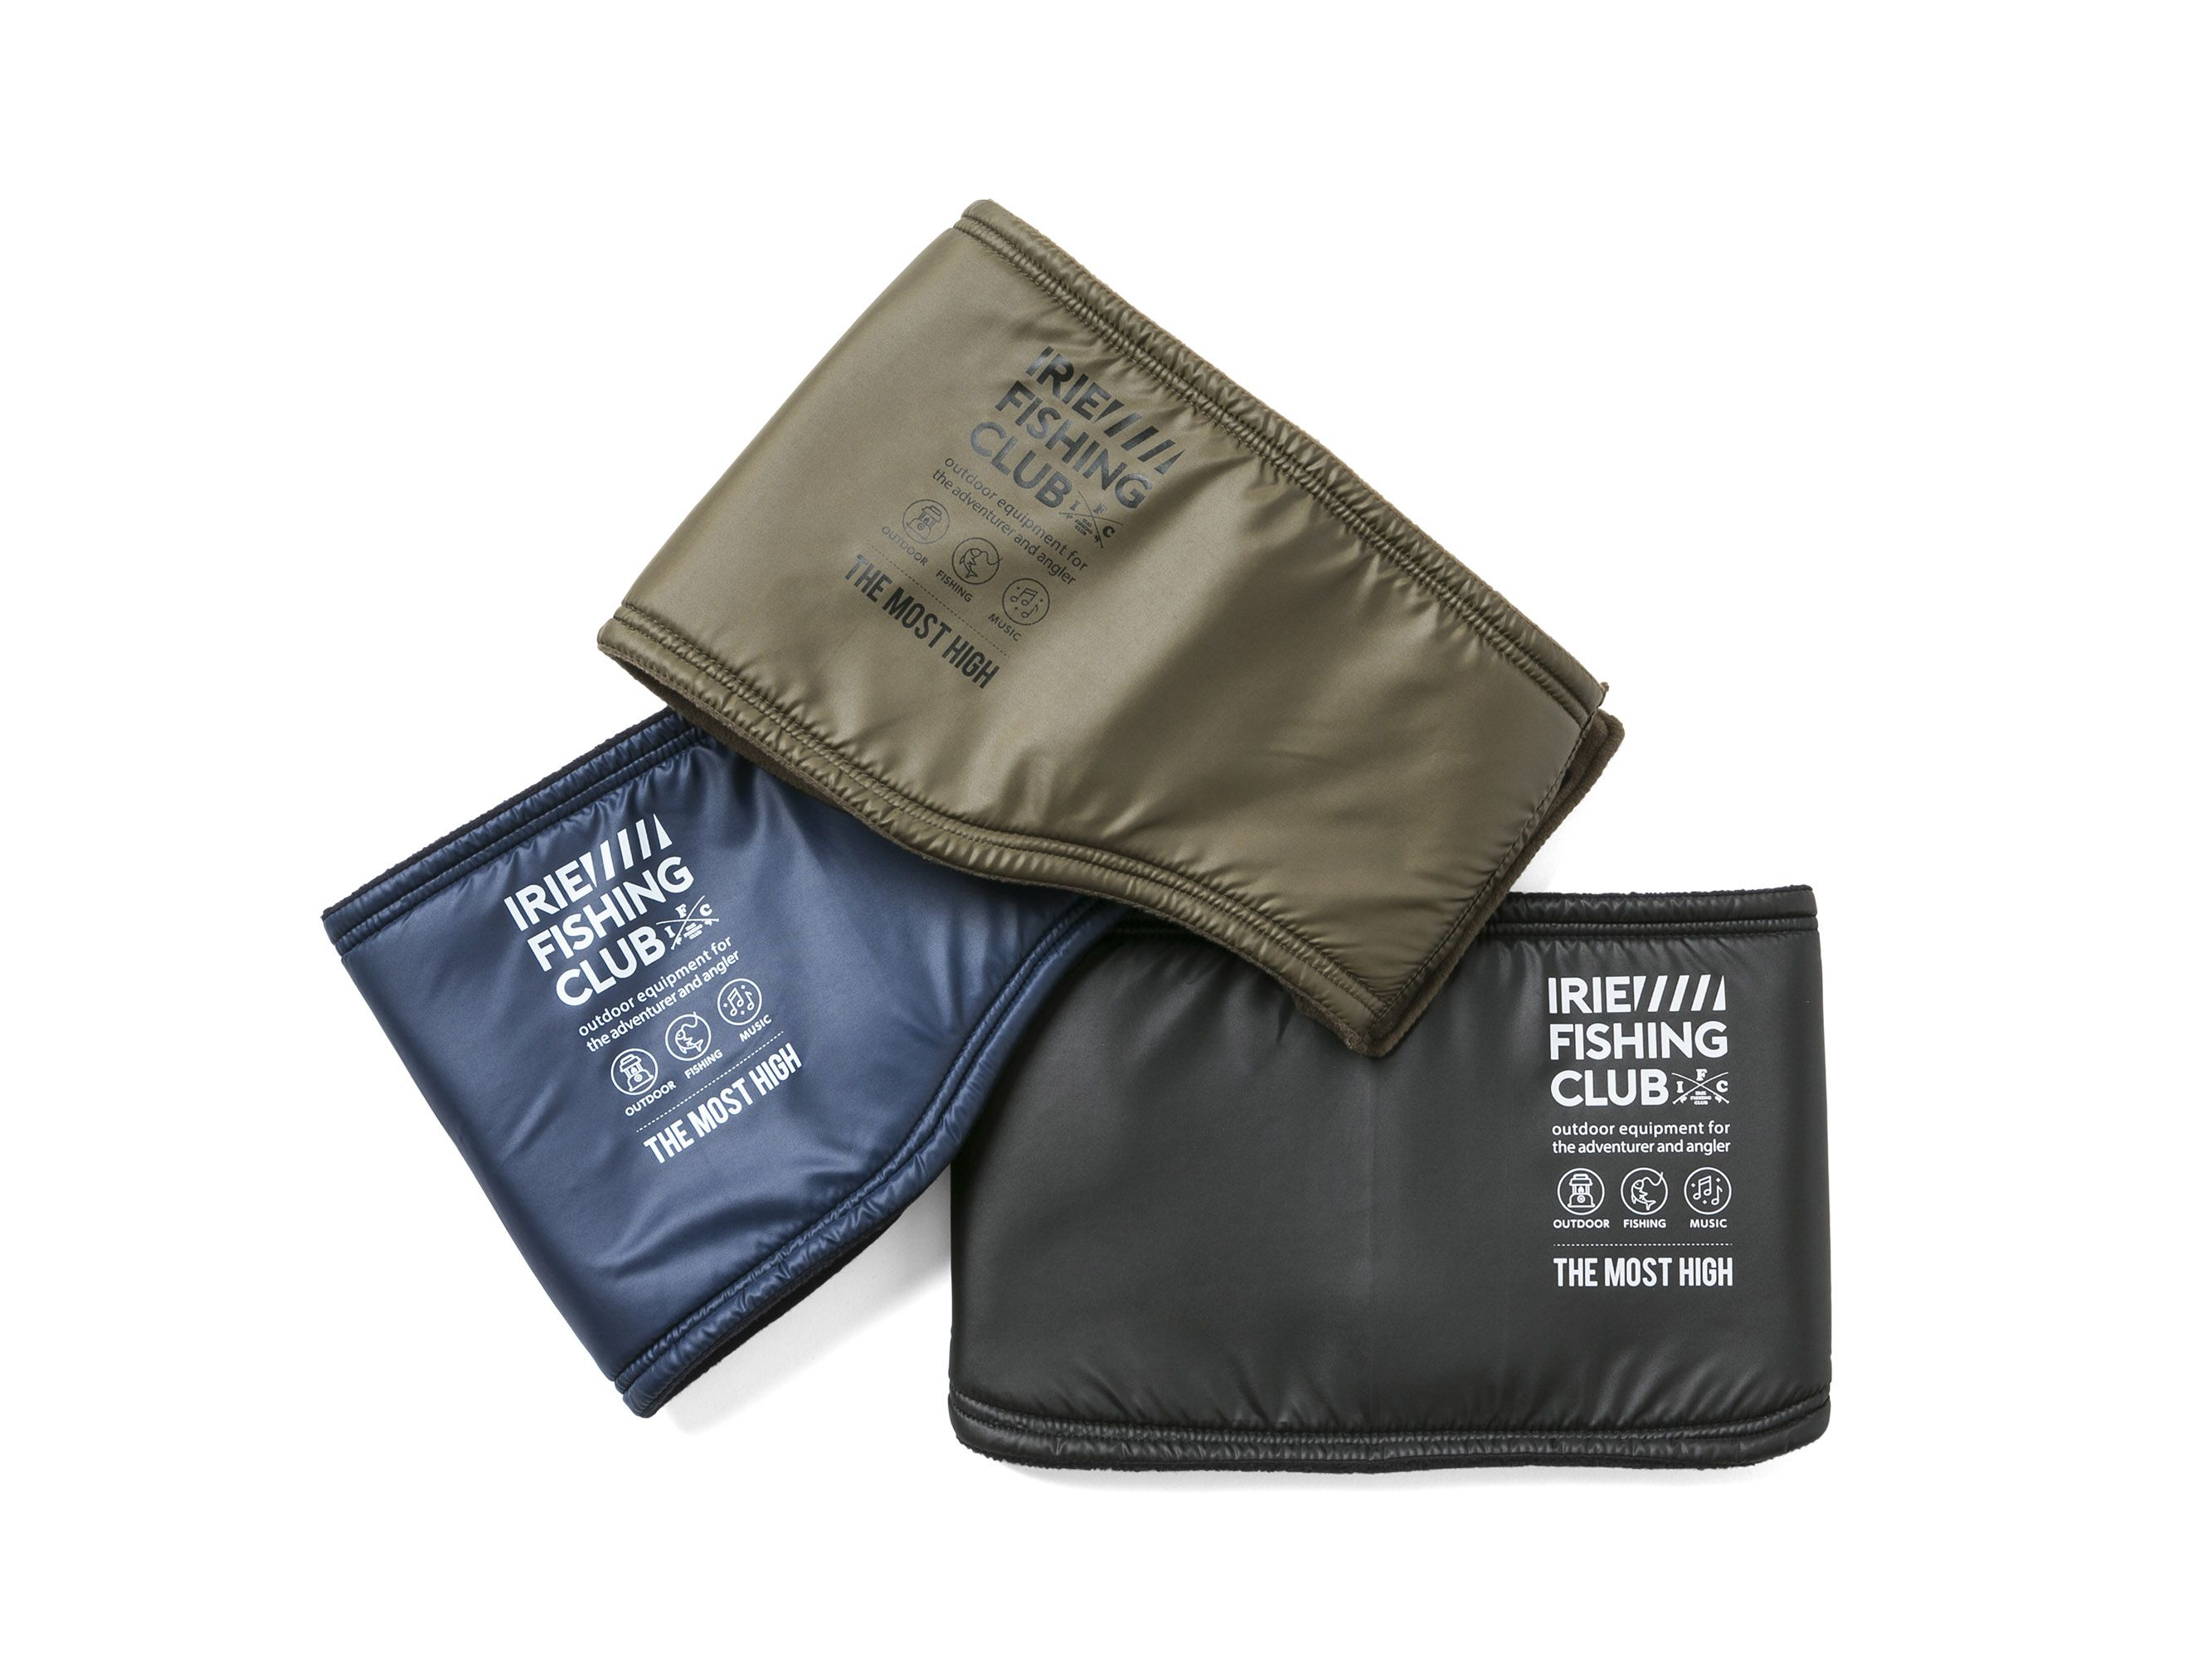 【再入荷】I.F.C. NECK WARMER -IRIE FISHING CLUB-